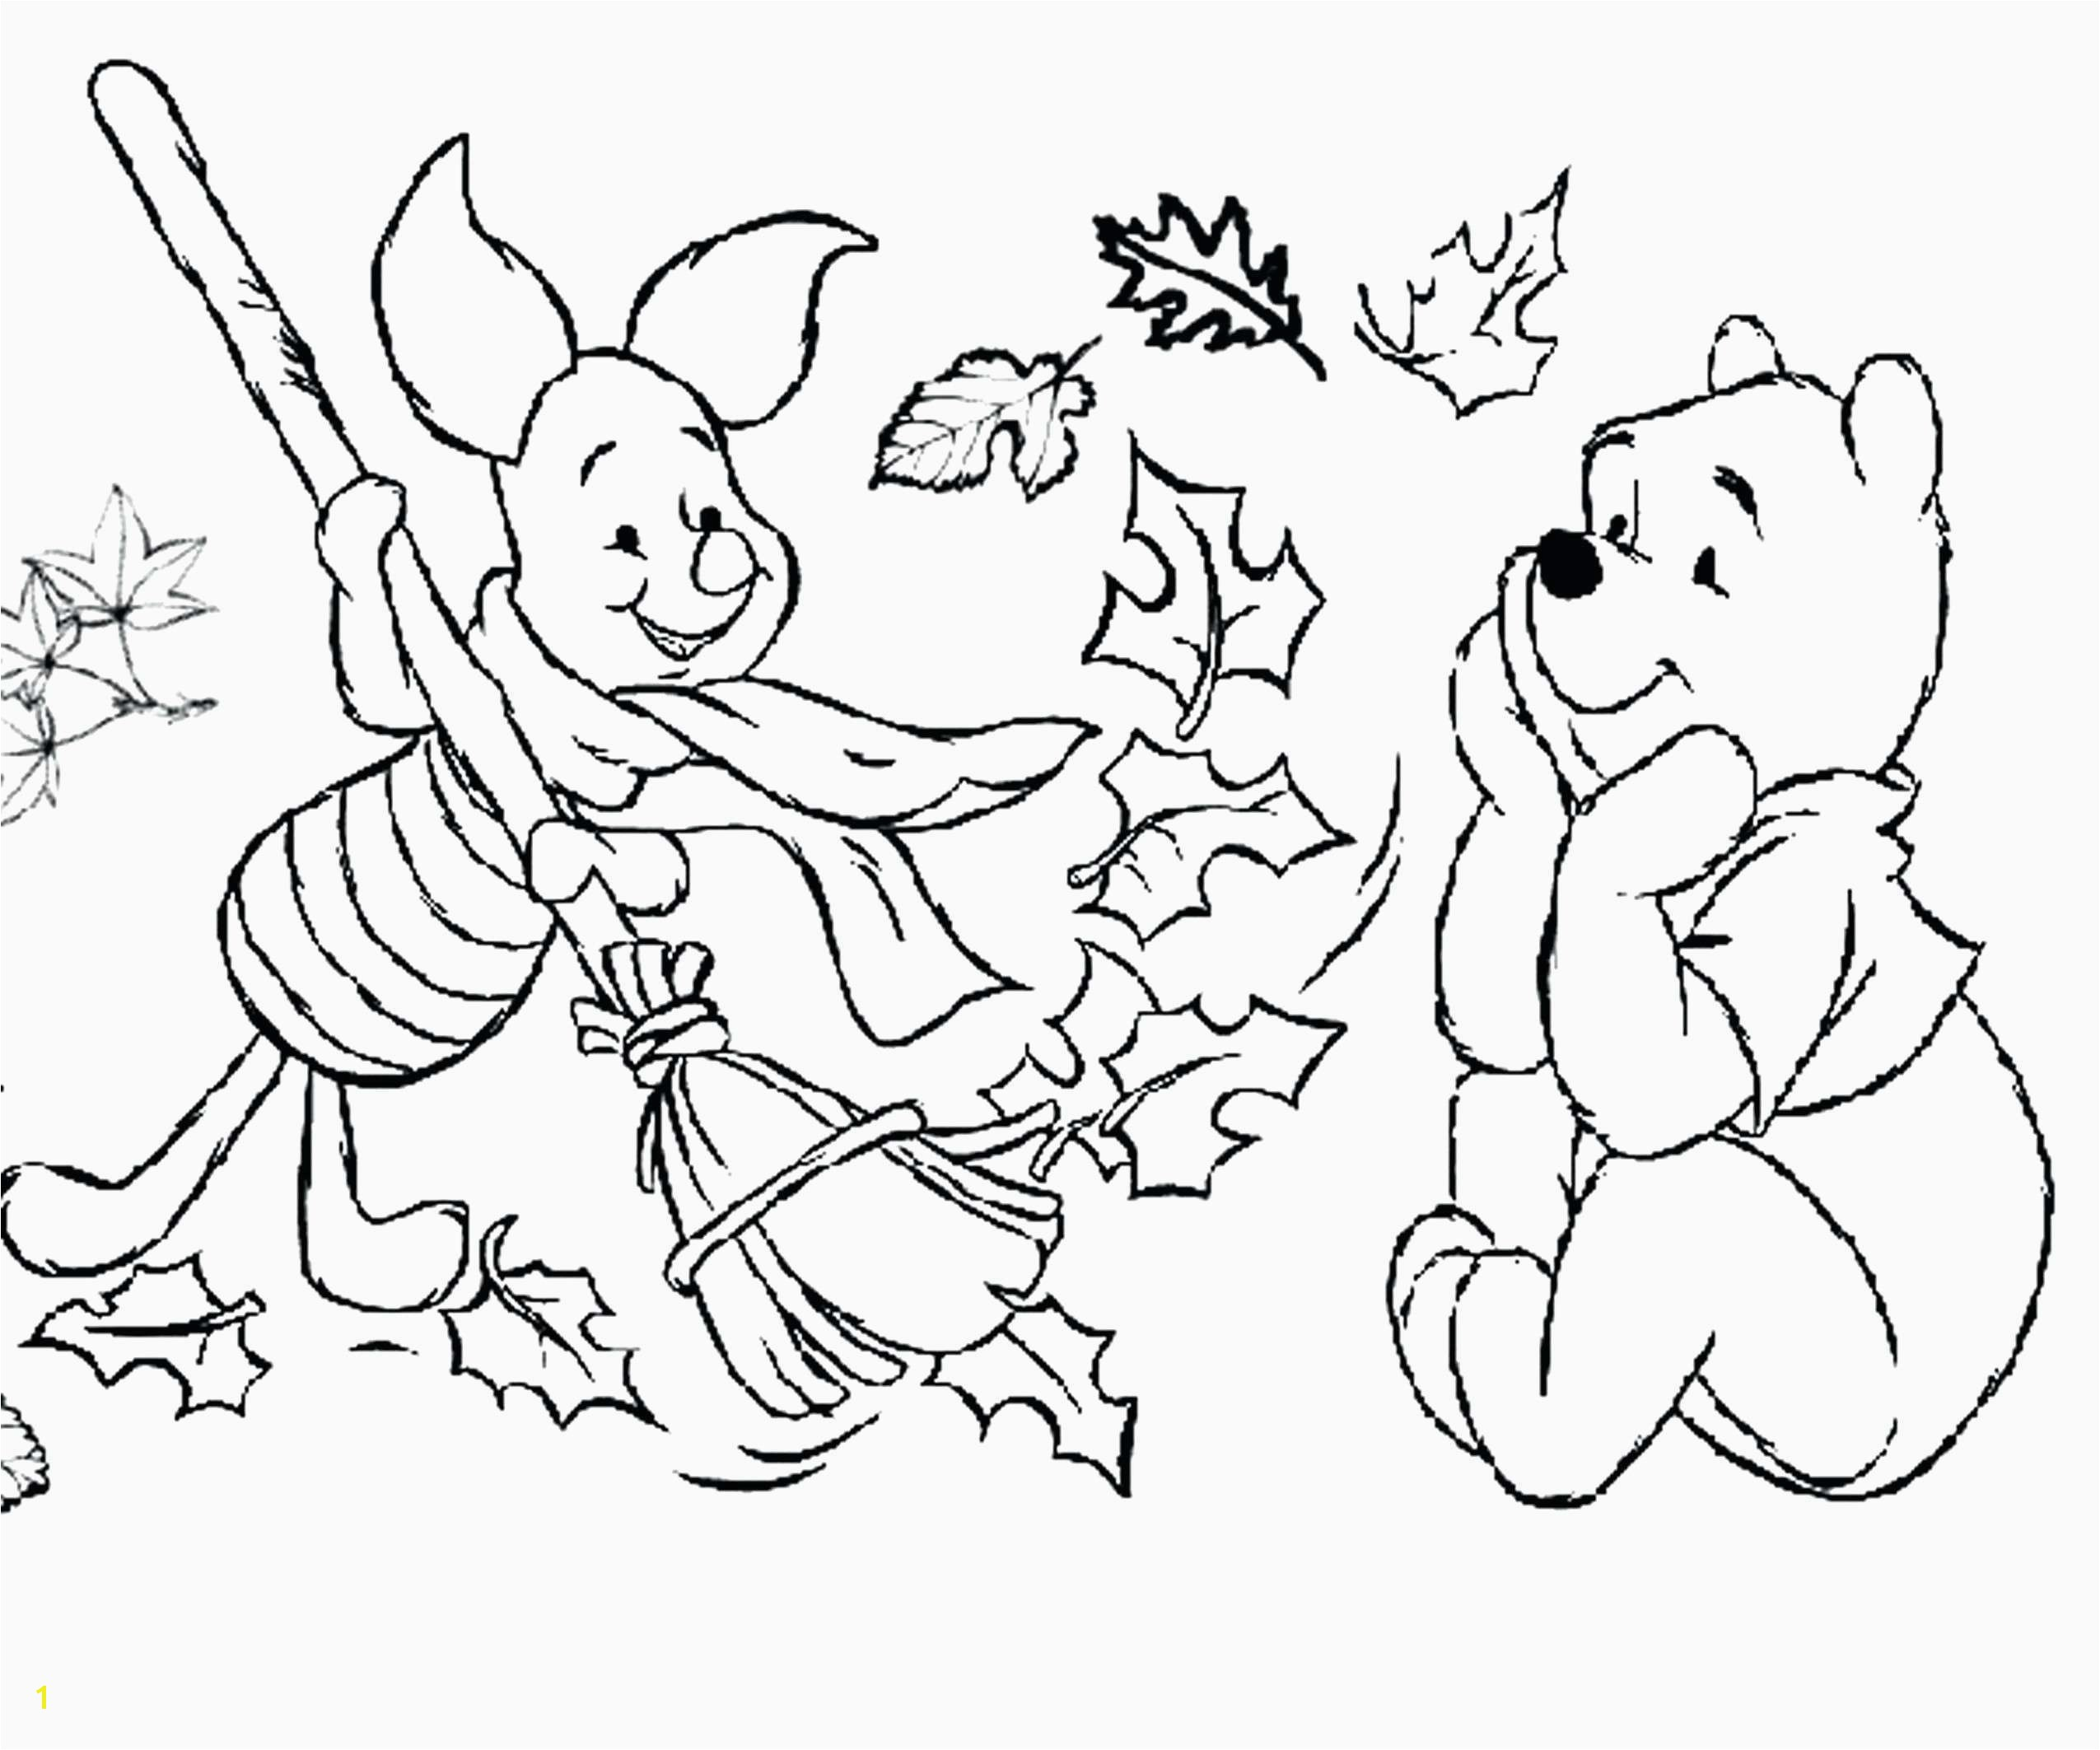 Christmas Preschool Coloring Pages Christmas Tree Coloring Page for Preschoolers